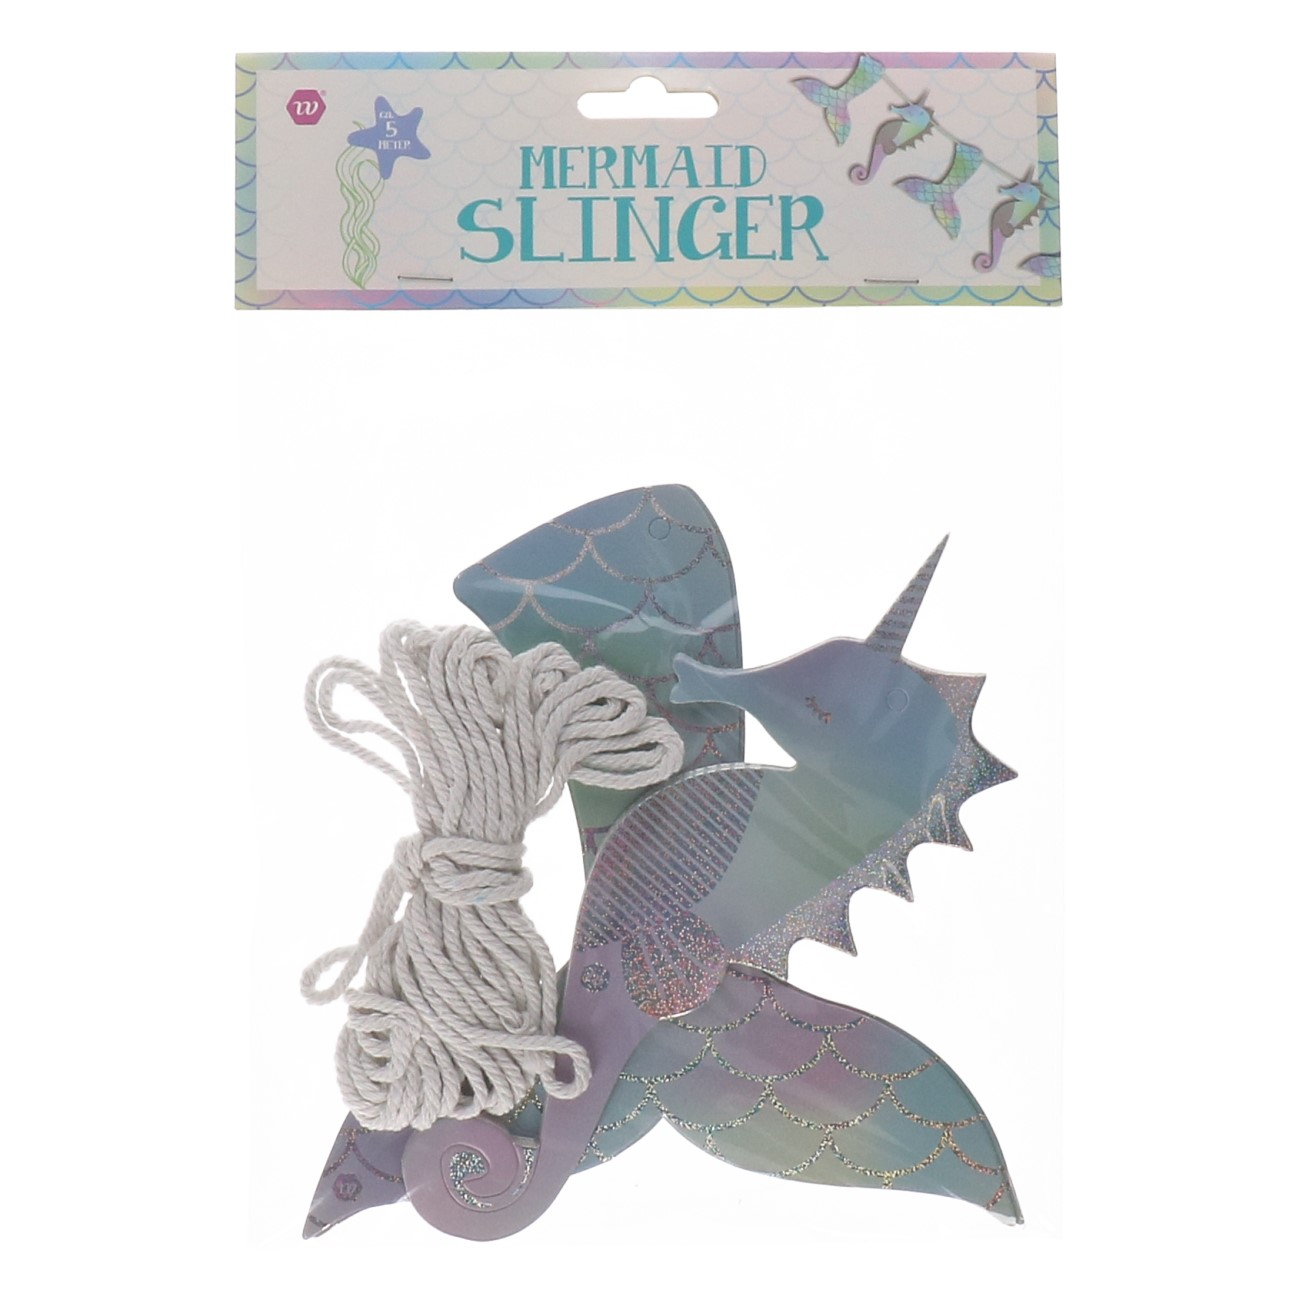 Mermaid slinger